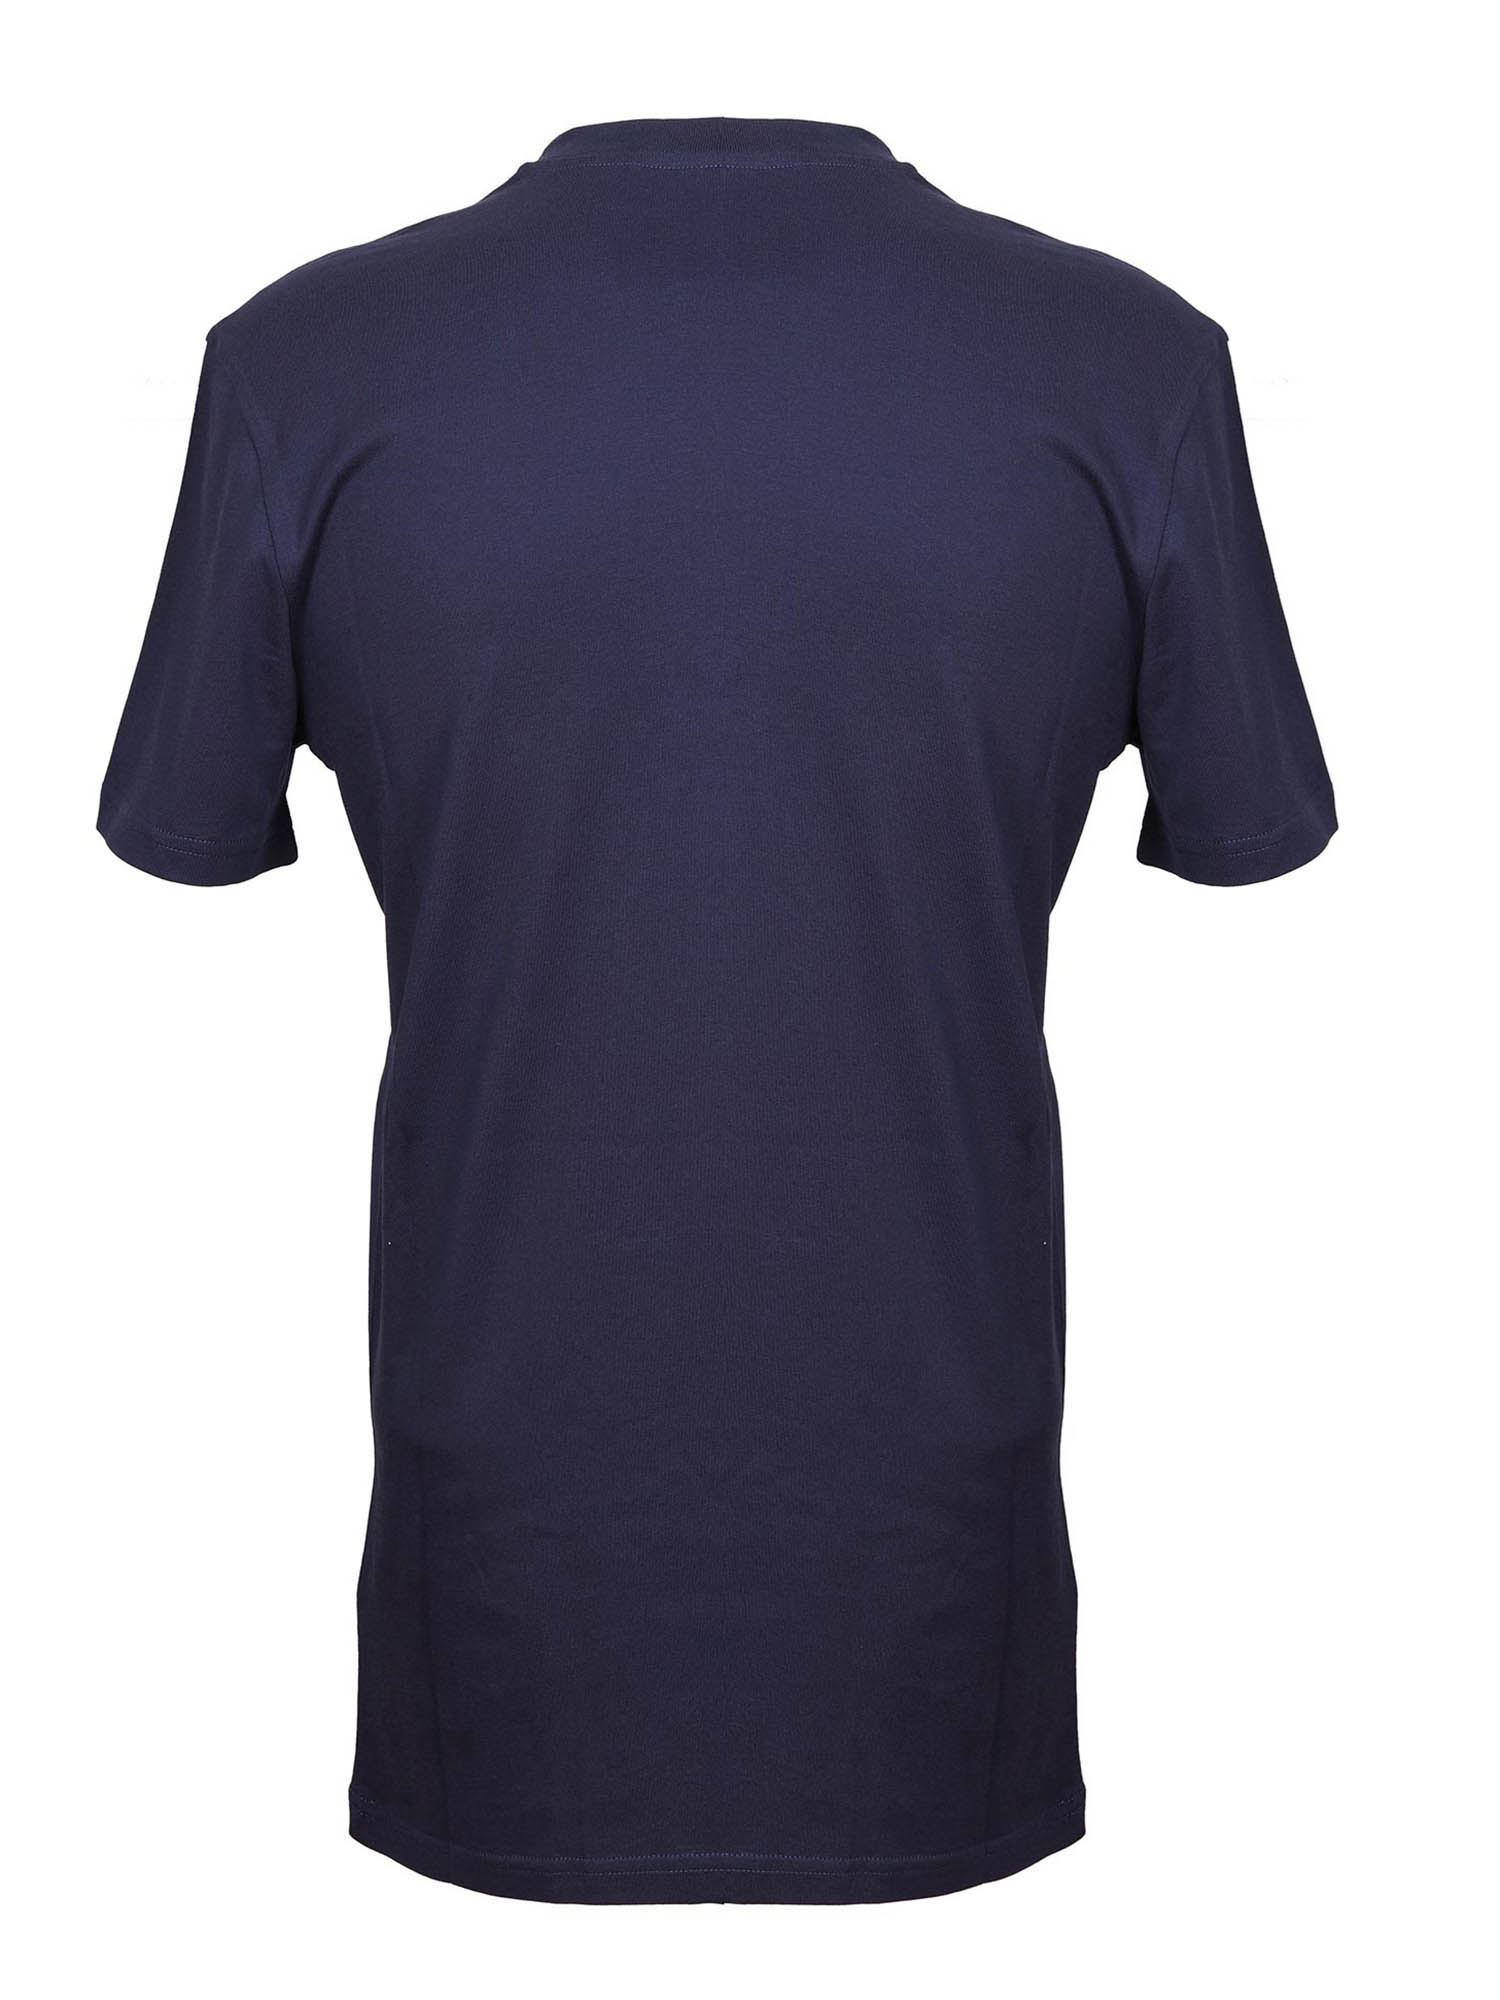 MOSCHINO Cottons WHITE LOGO T-SHIRT IN BLUE